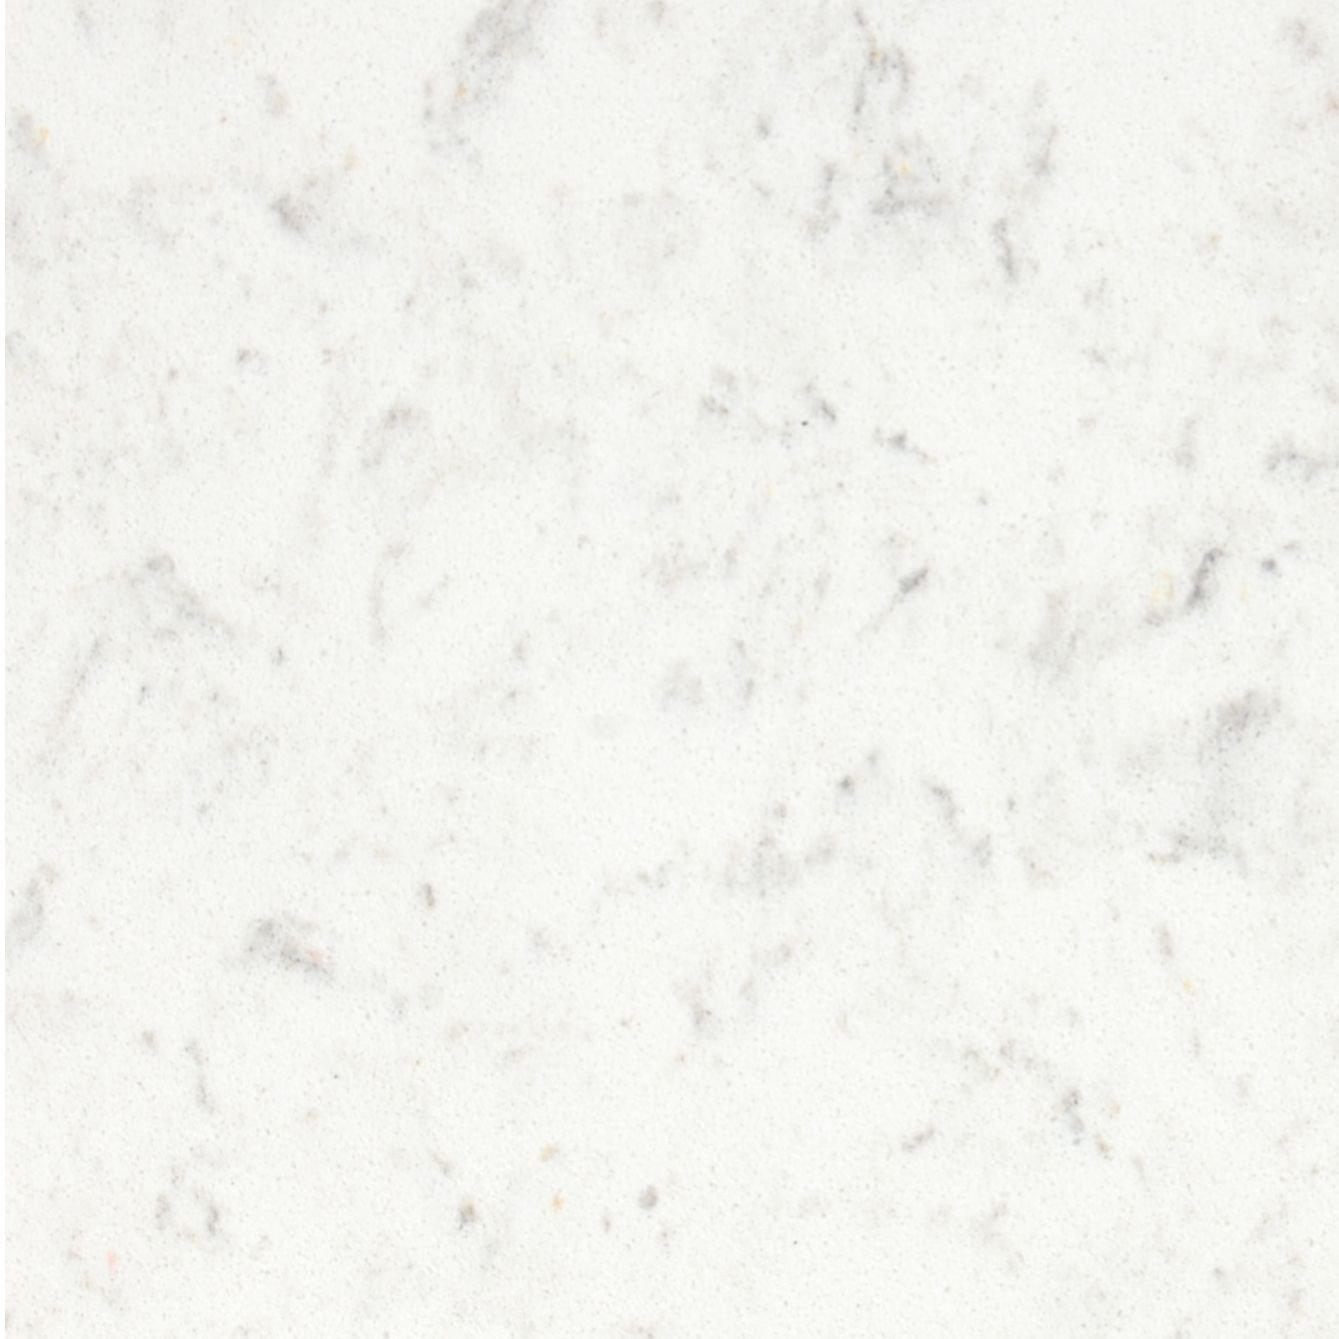 Pro-Quartz Carrara White Made To Measure 20mm Product Image